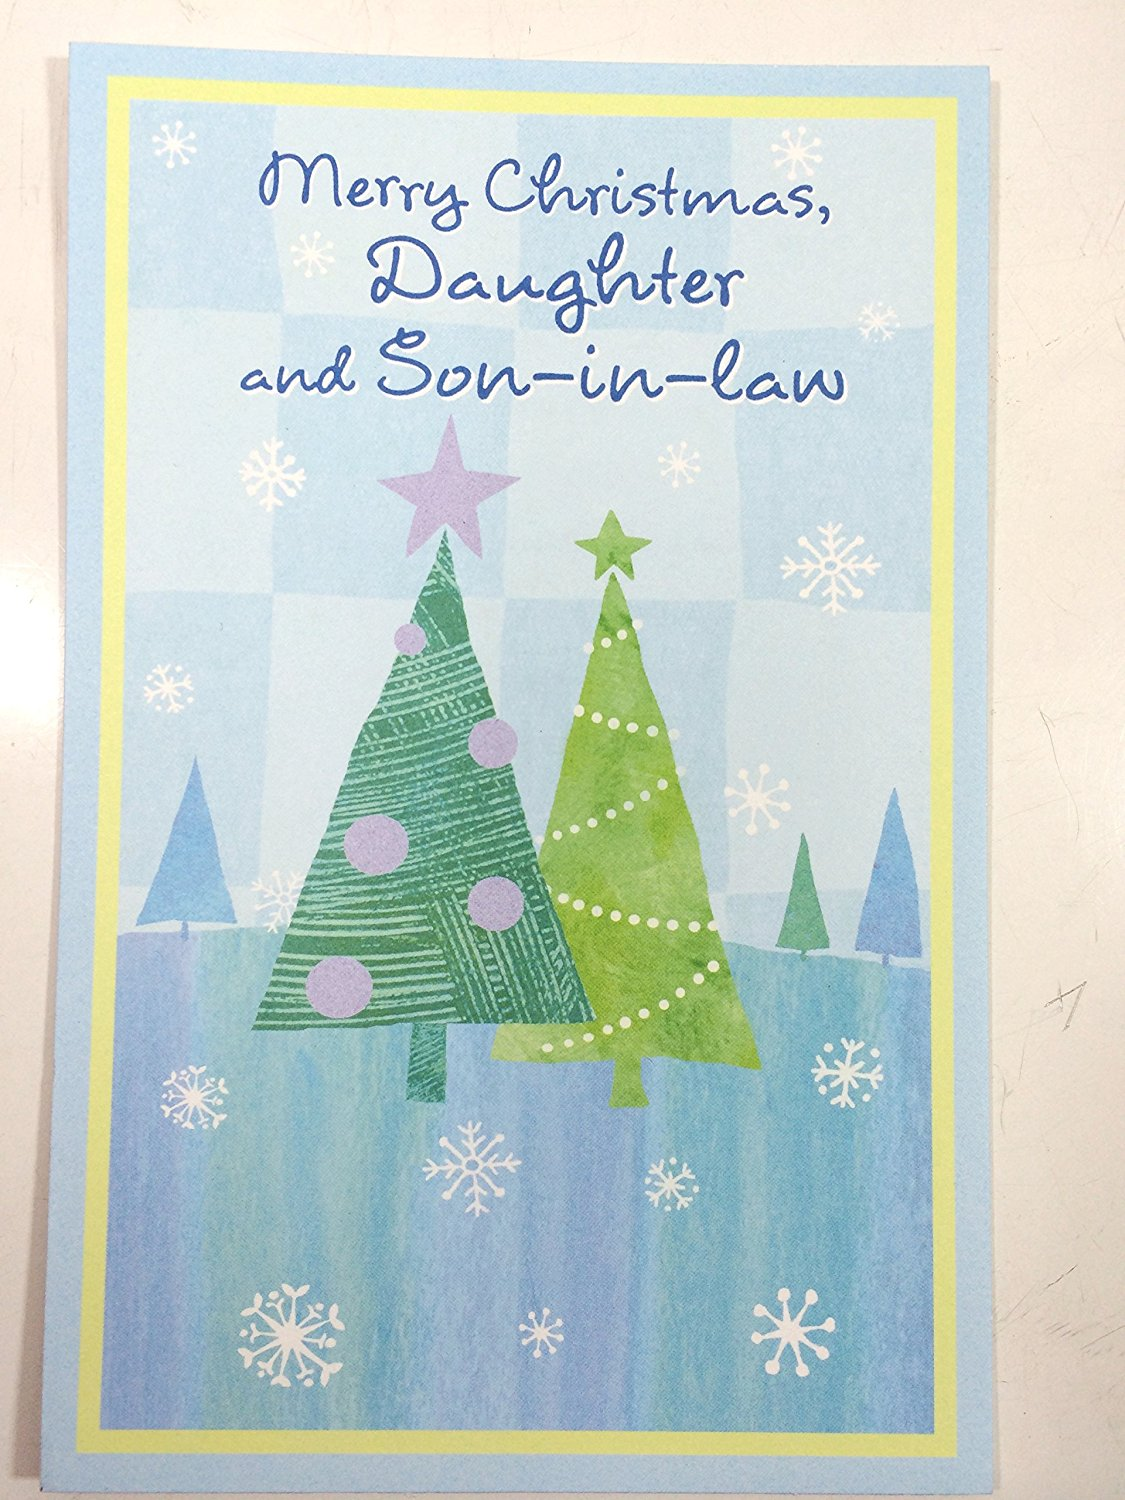 Christmas Card Daughter & Husband (Merry Christmas, Daughter and Son-in-law)By American Greetings pk of 2